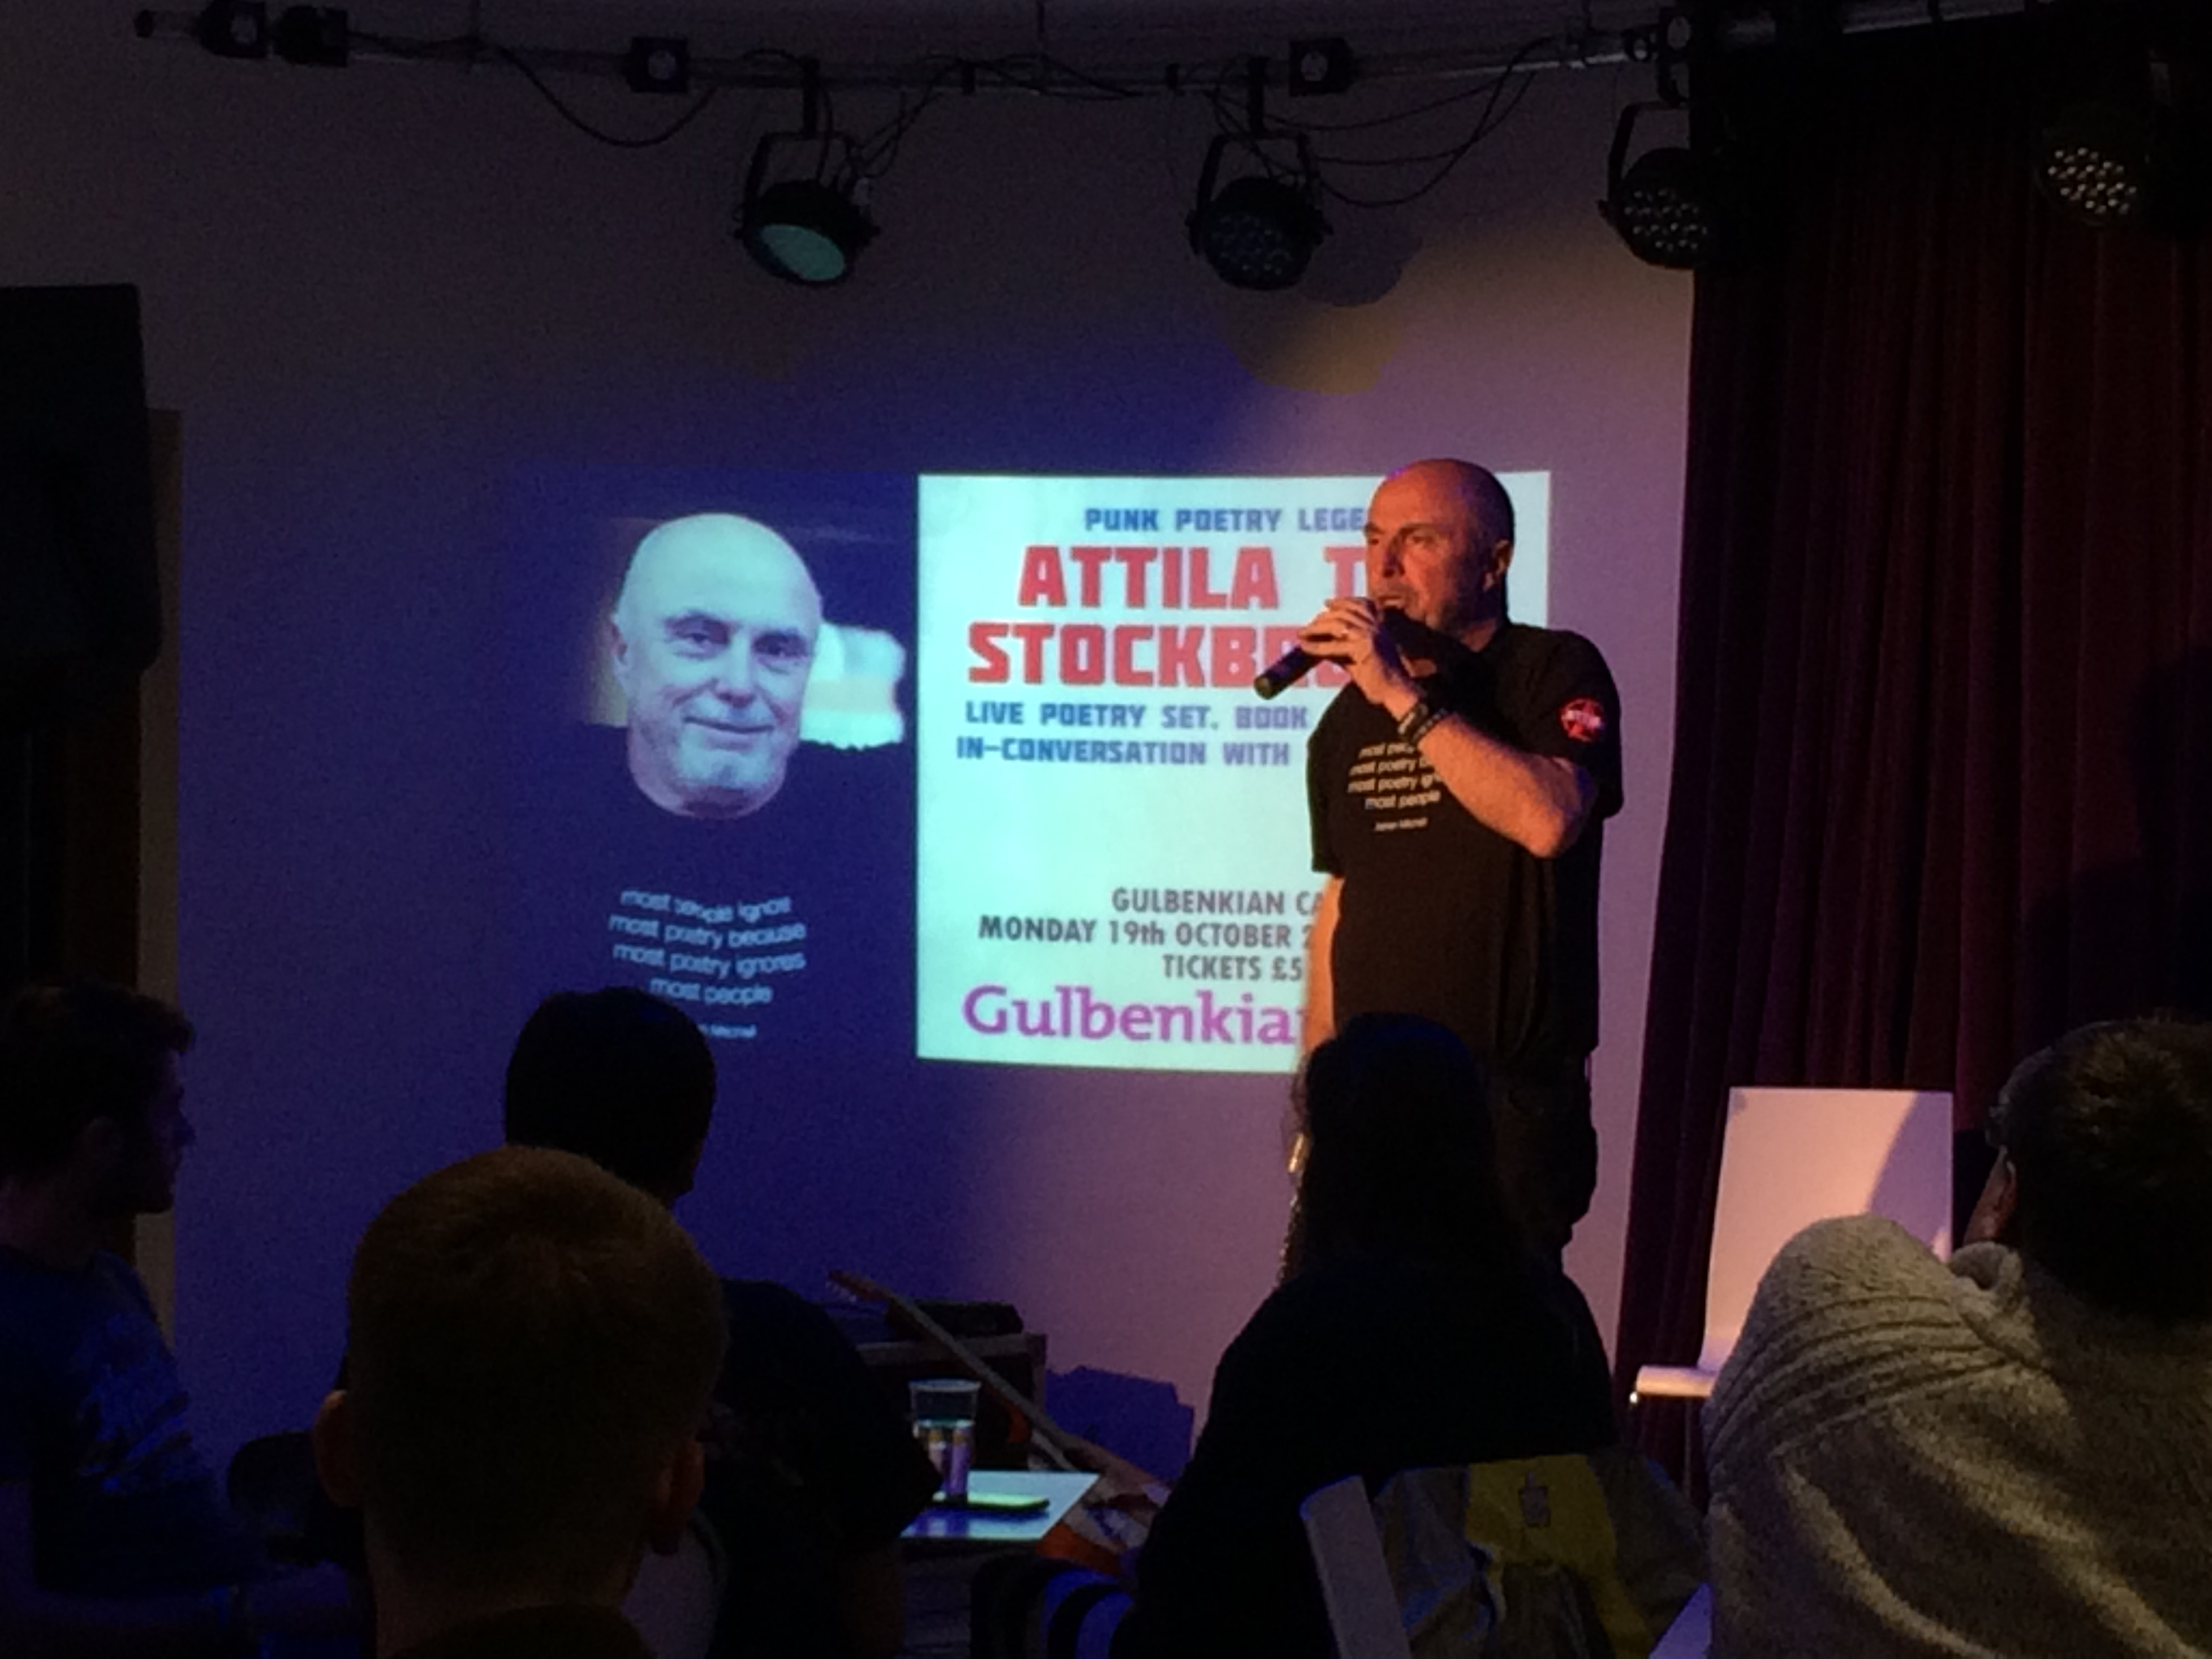 Attila the Stockbroker performing at the Gulbenkian Cafe. Photo Elspeth Millar